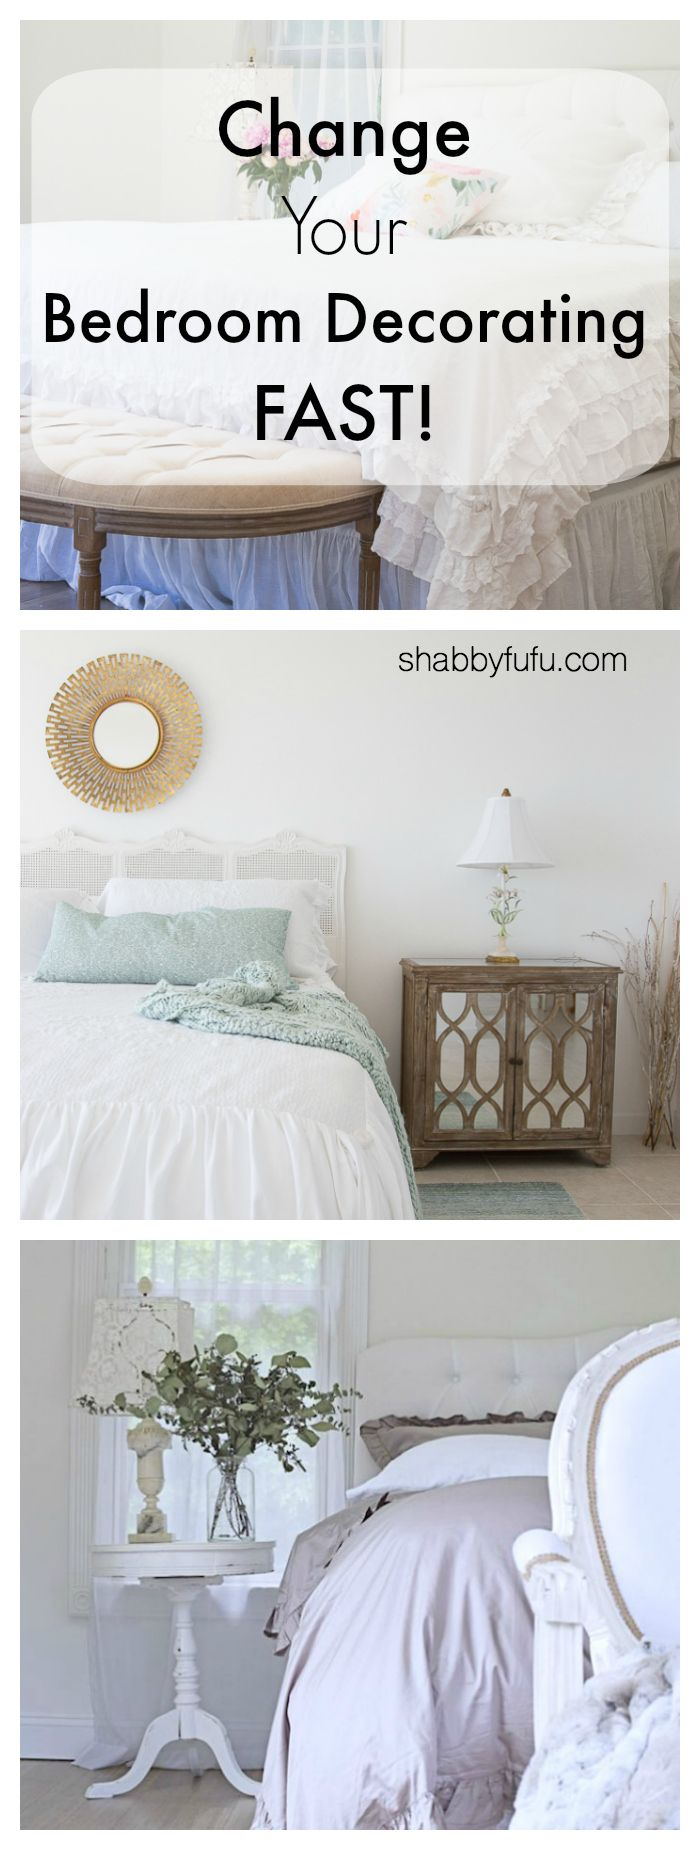 How To Completely Change Out Your Bedroom Decorating